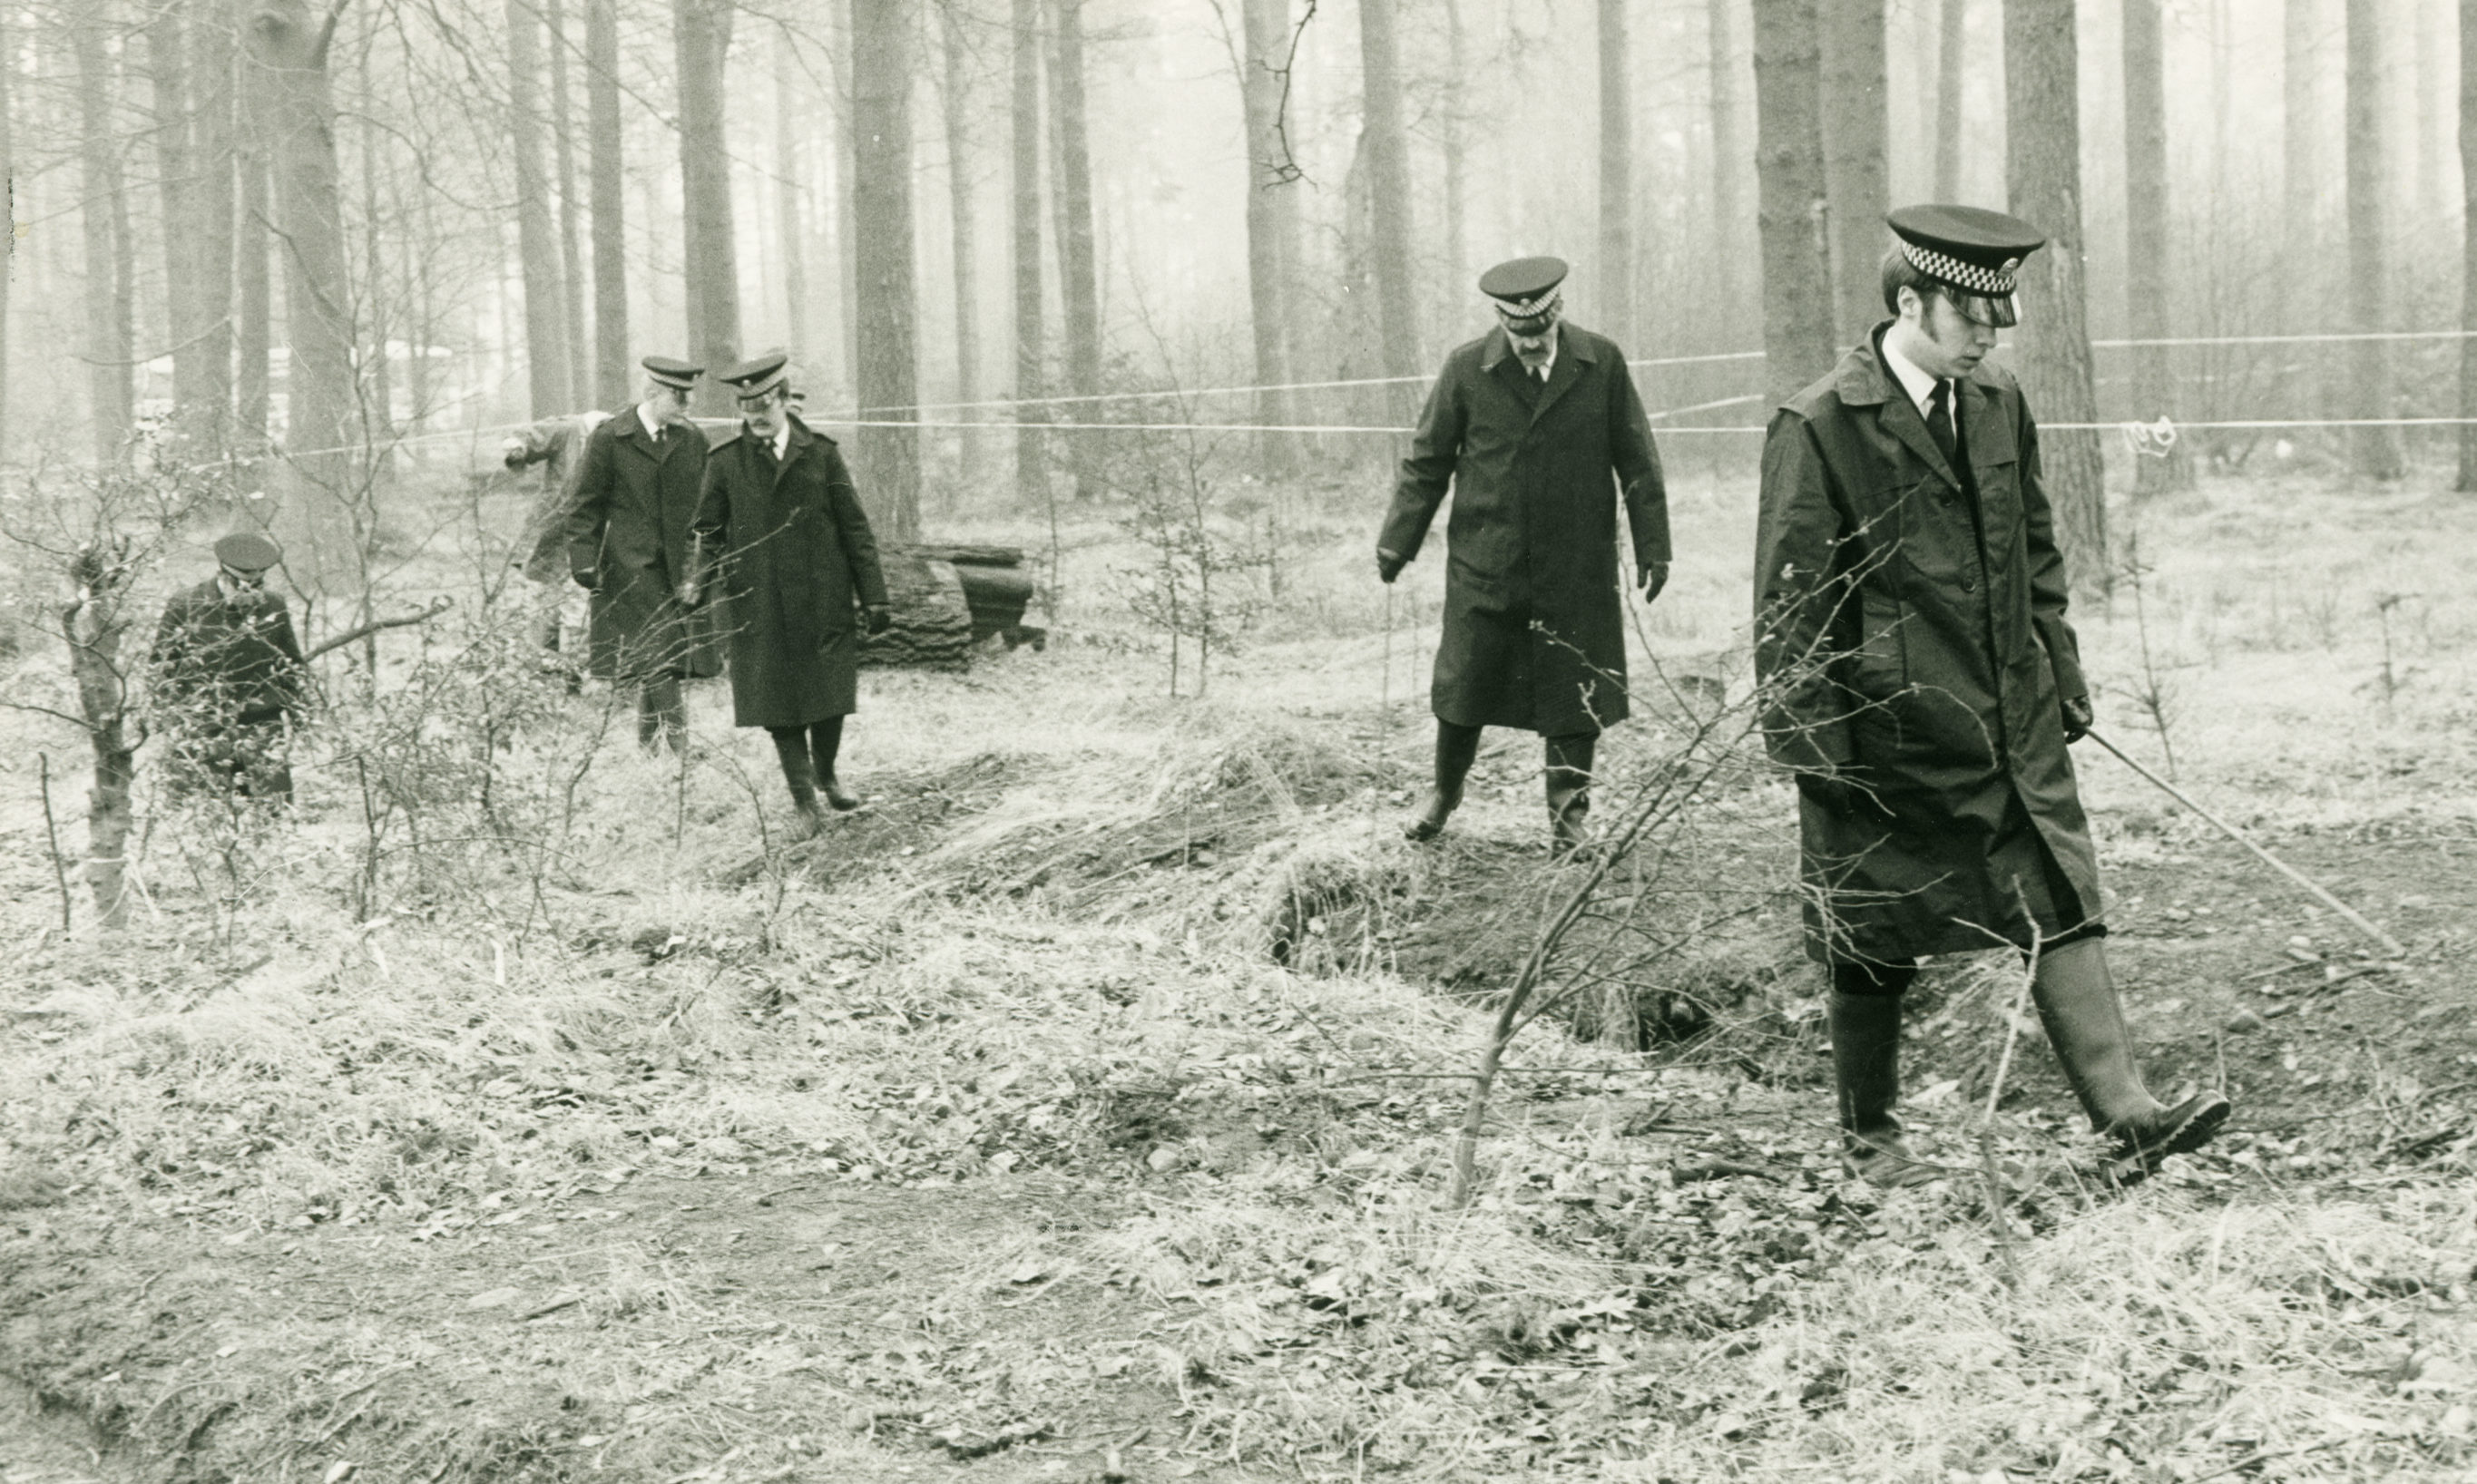 Police search Templeton Woods in 1979 following the murder of Carol Lannen.